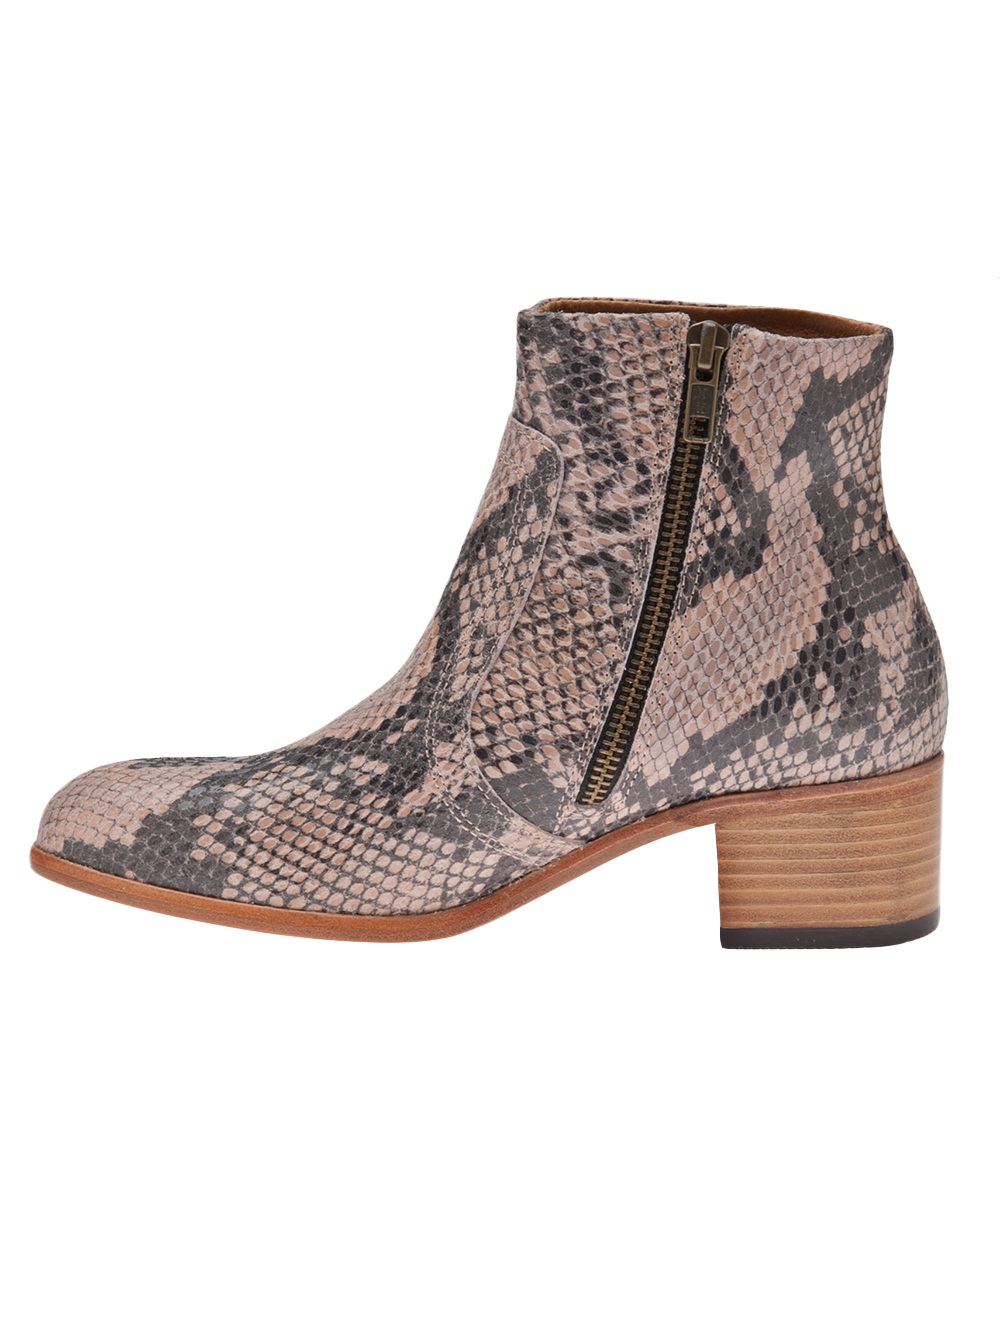 H by Hudson Snake Ankle Boot in Pink & Purple (Brown)